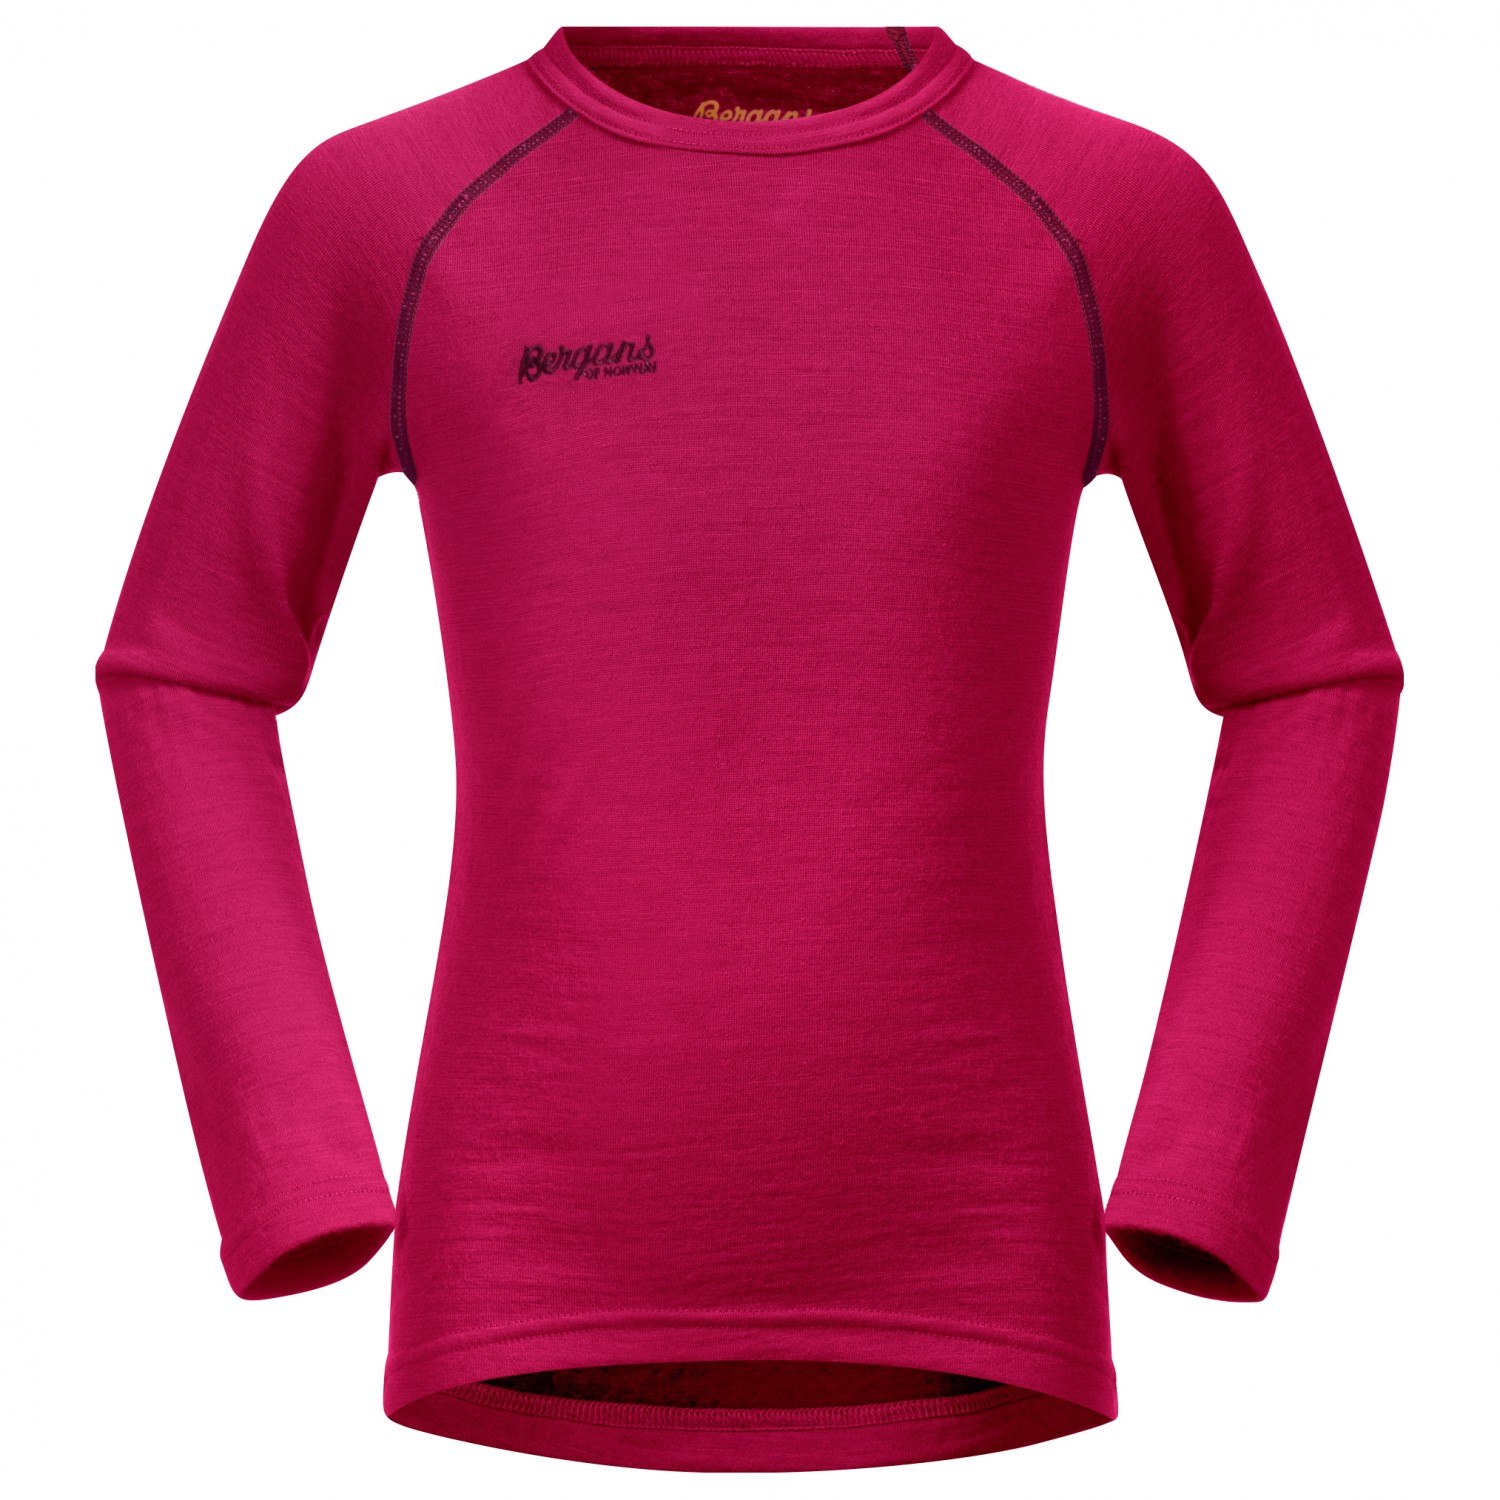 02ed52e338 Bergans Akeleie Shirt - Merino Base Layer Kids